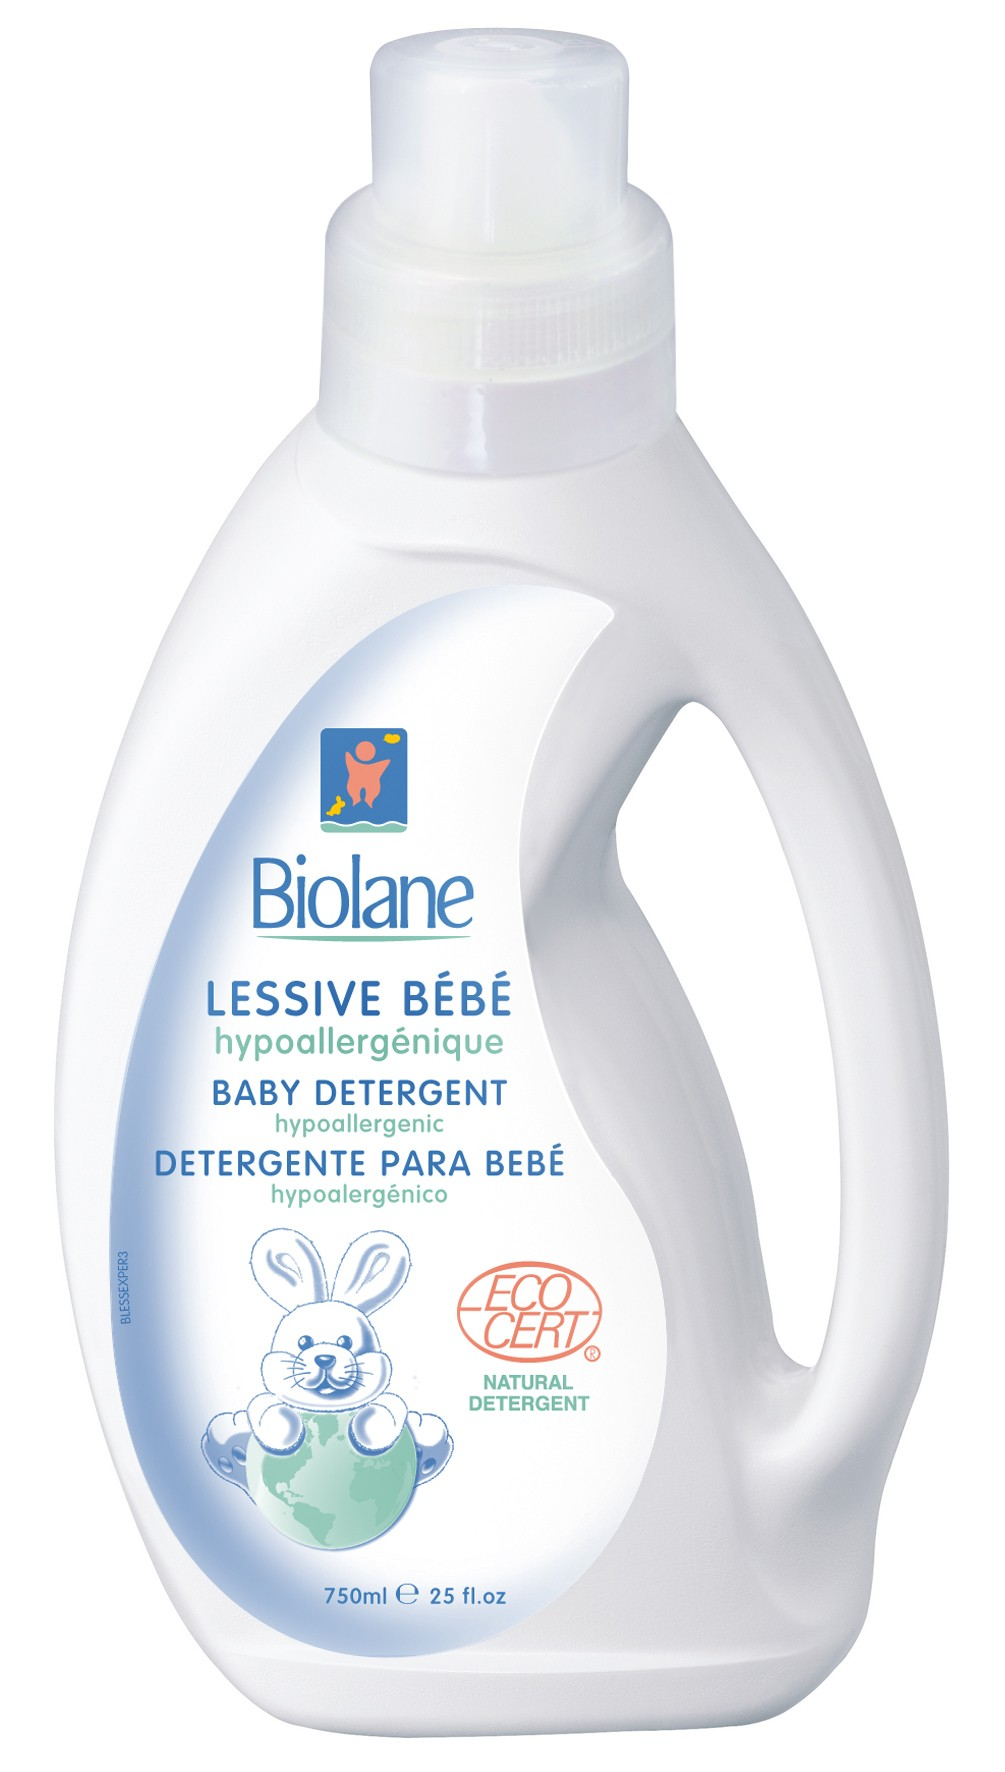 Image Ecological Baby Detergent